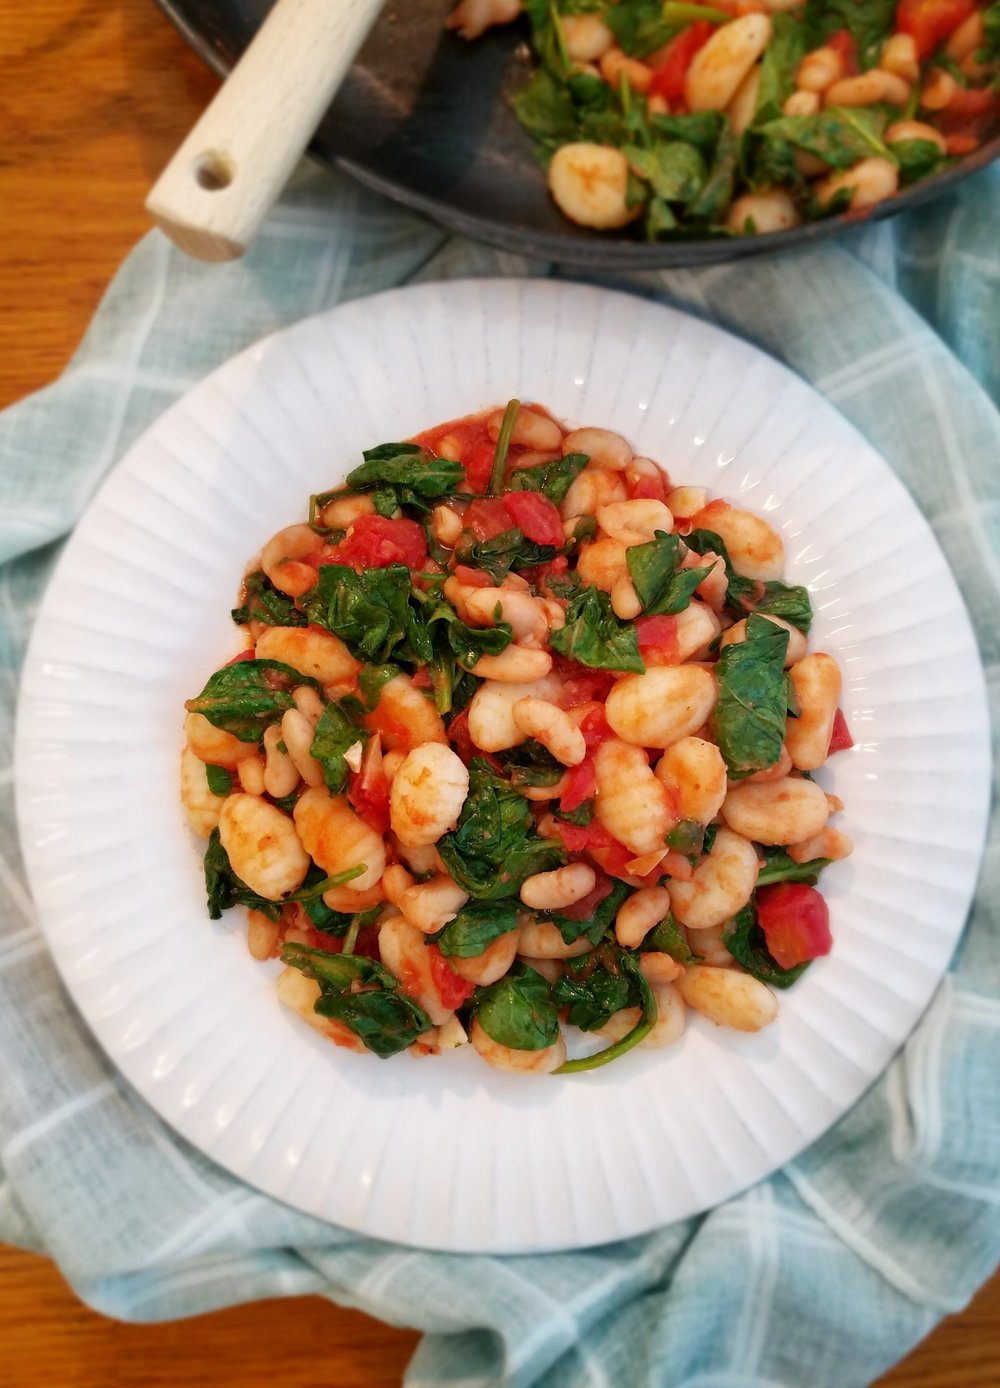 Gnocchi with Cannellini Beans, Tomatoes, and Spinach